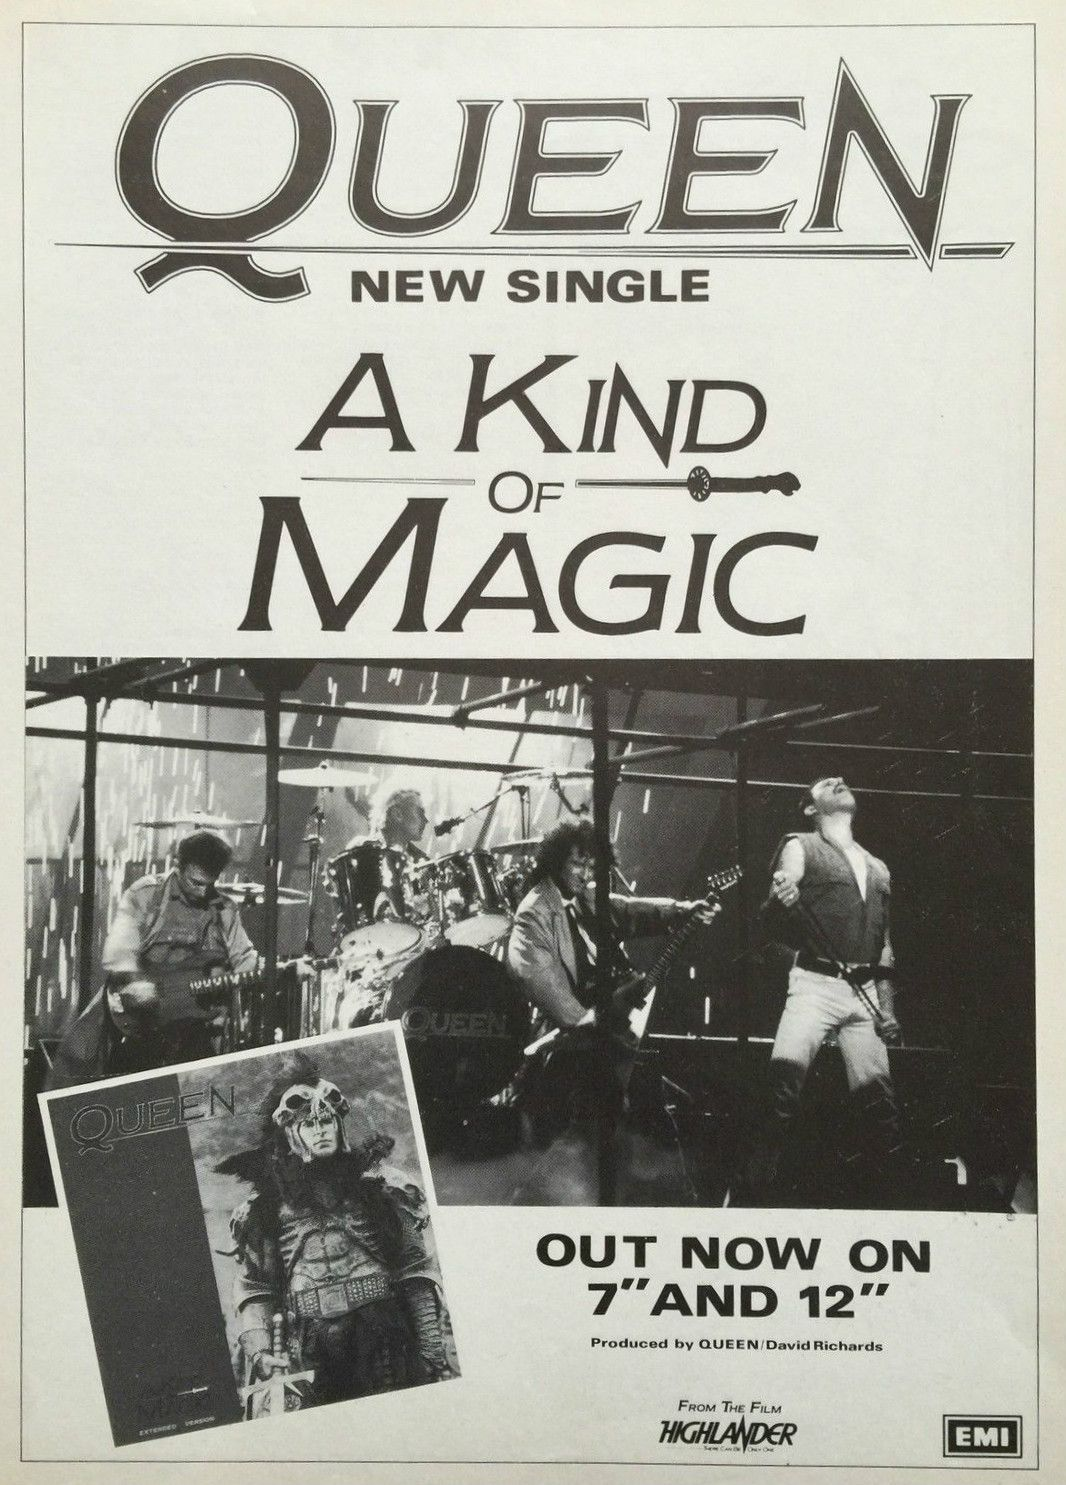 Queen Promotional Ad A kind of magic, Concert posters